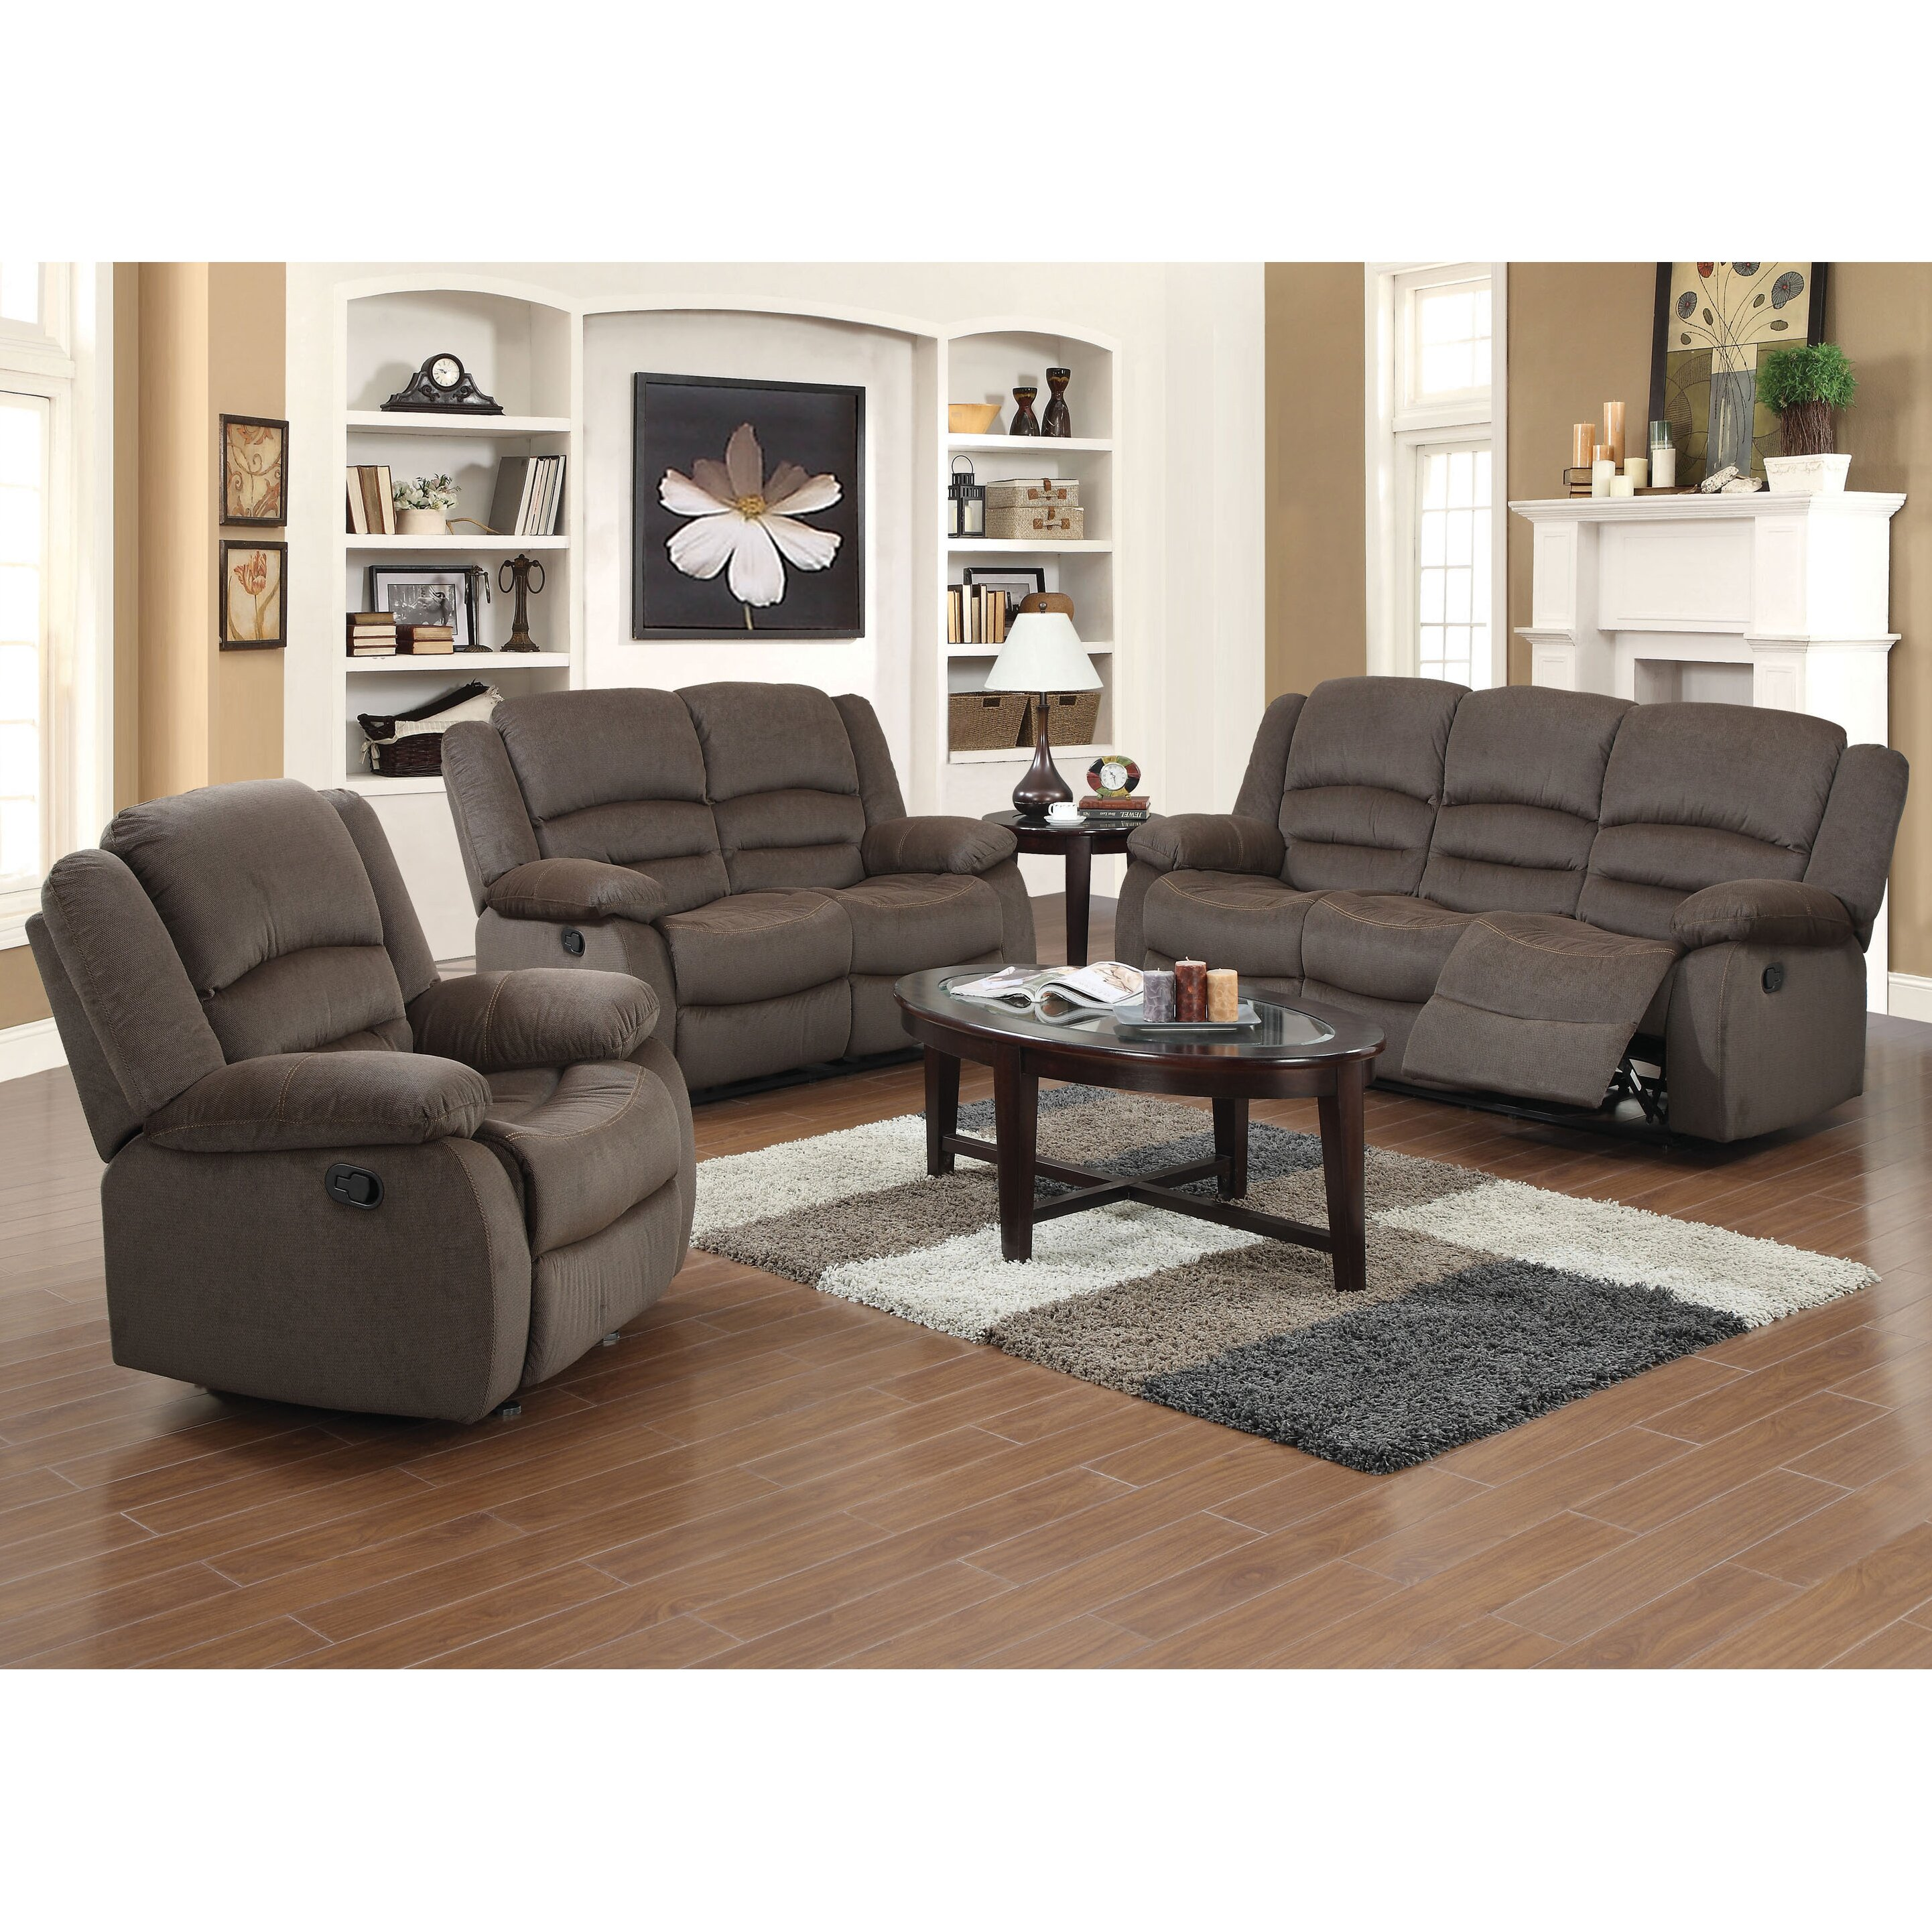 Container 3 Piece Recliner Sofa Set Amp Reviews Wayfair